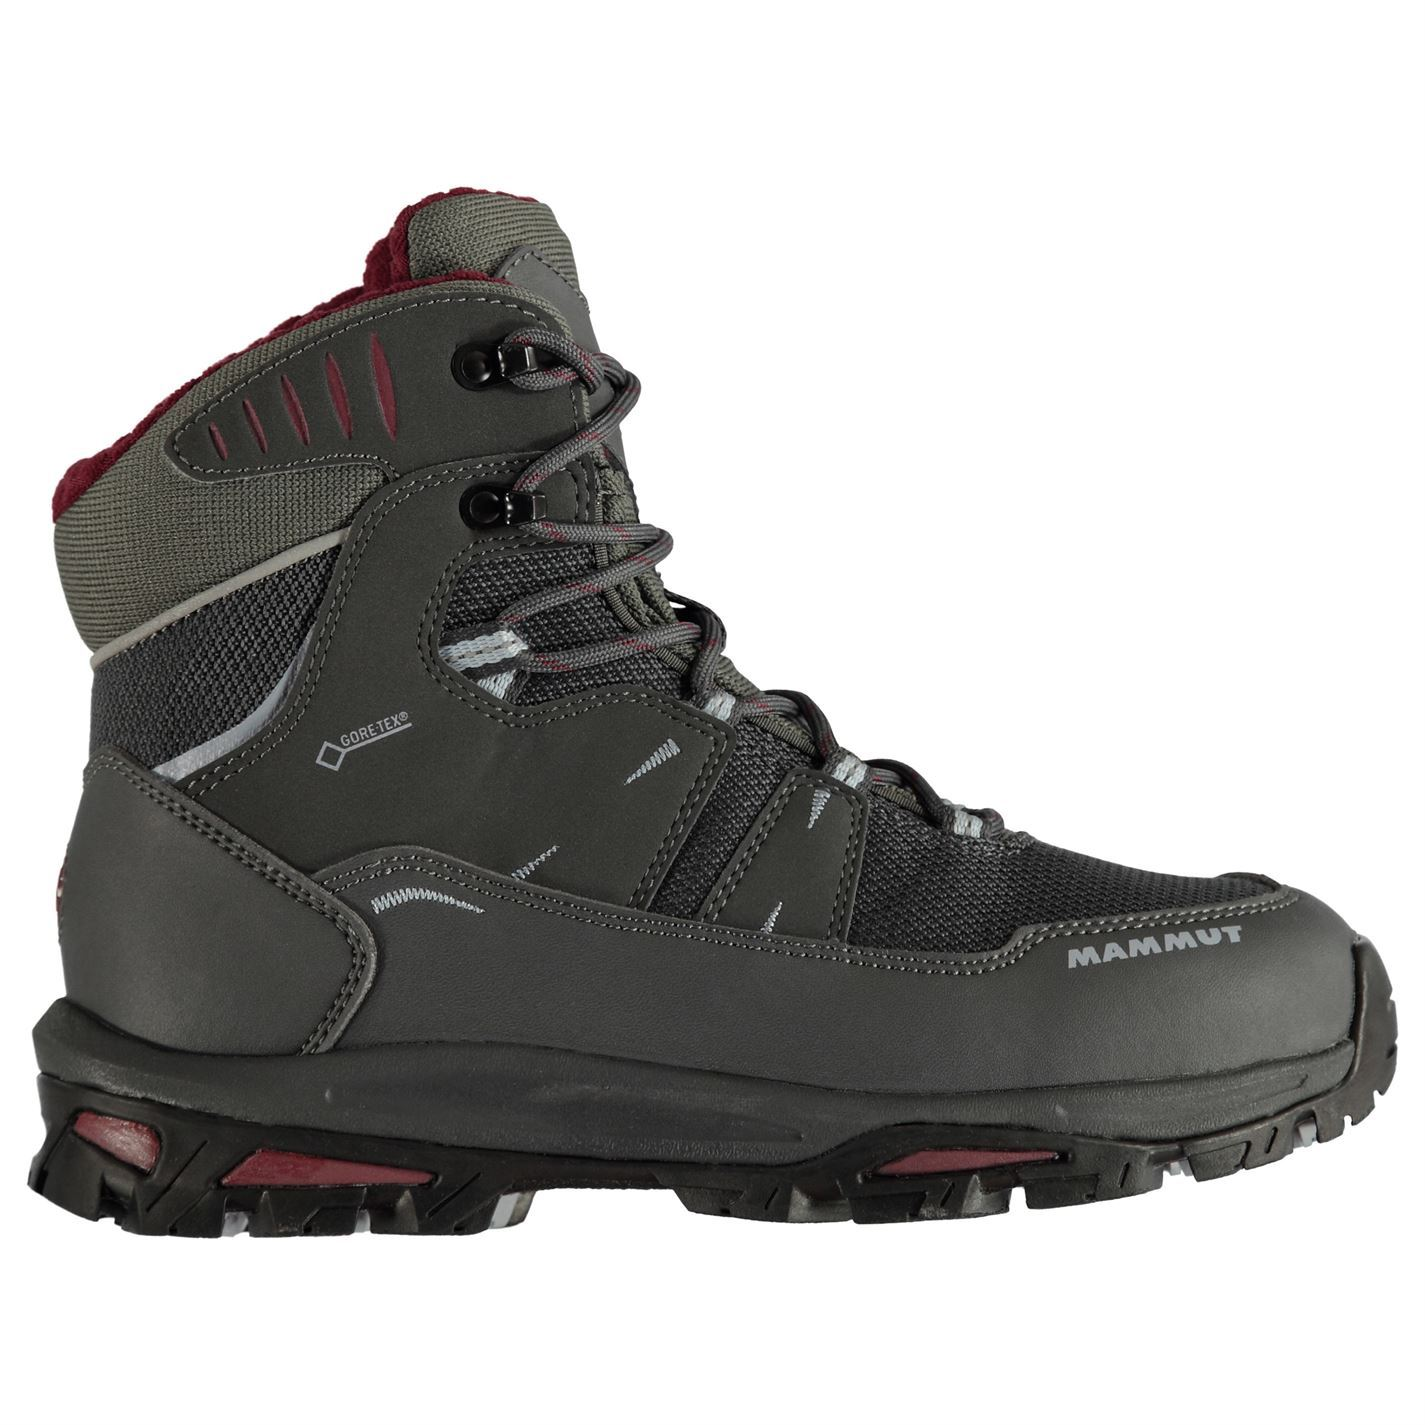 sale retailer 37685 a7ed1 Details about Mammut Runbold GTX Walking Boots Womens Grey Hiking Trekking  Shoes